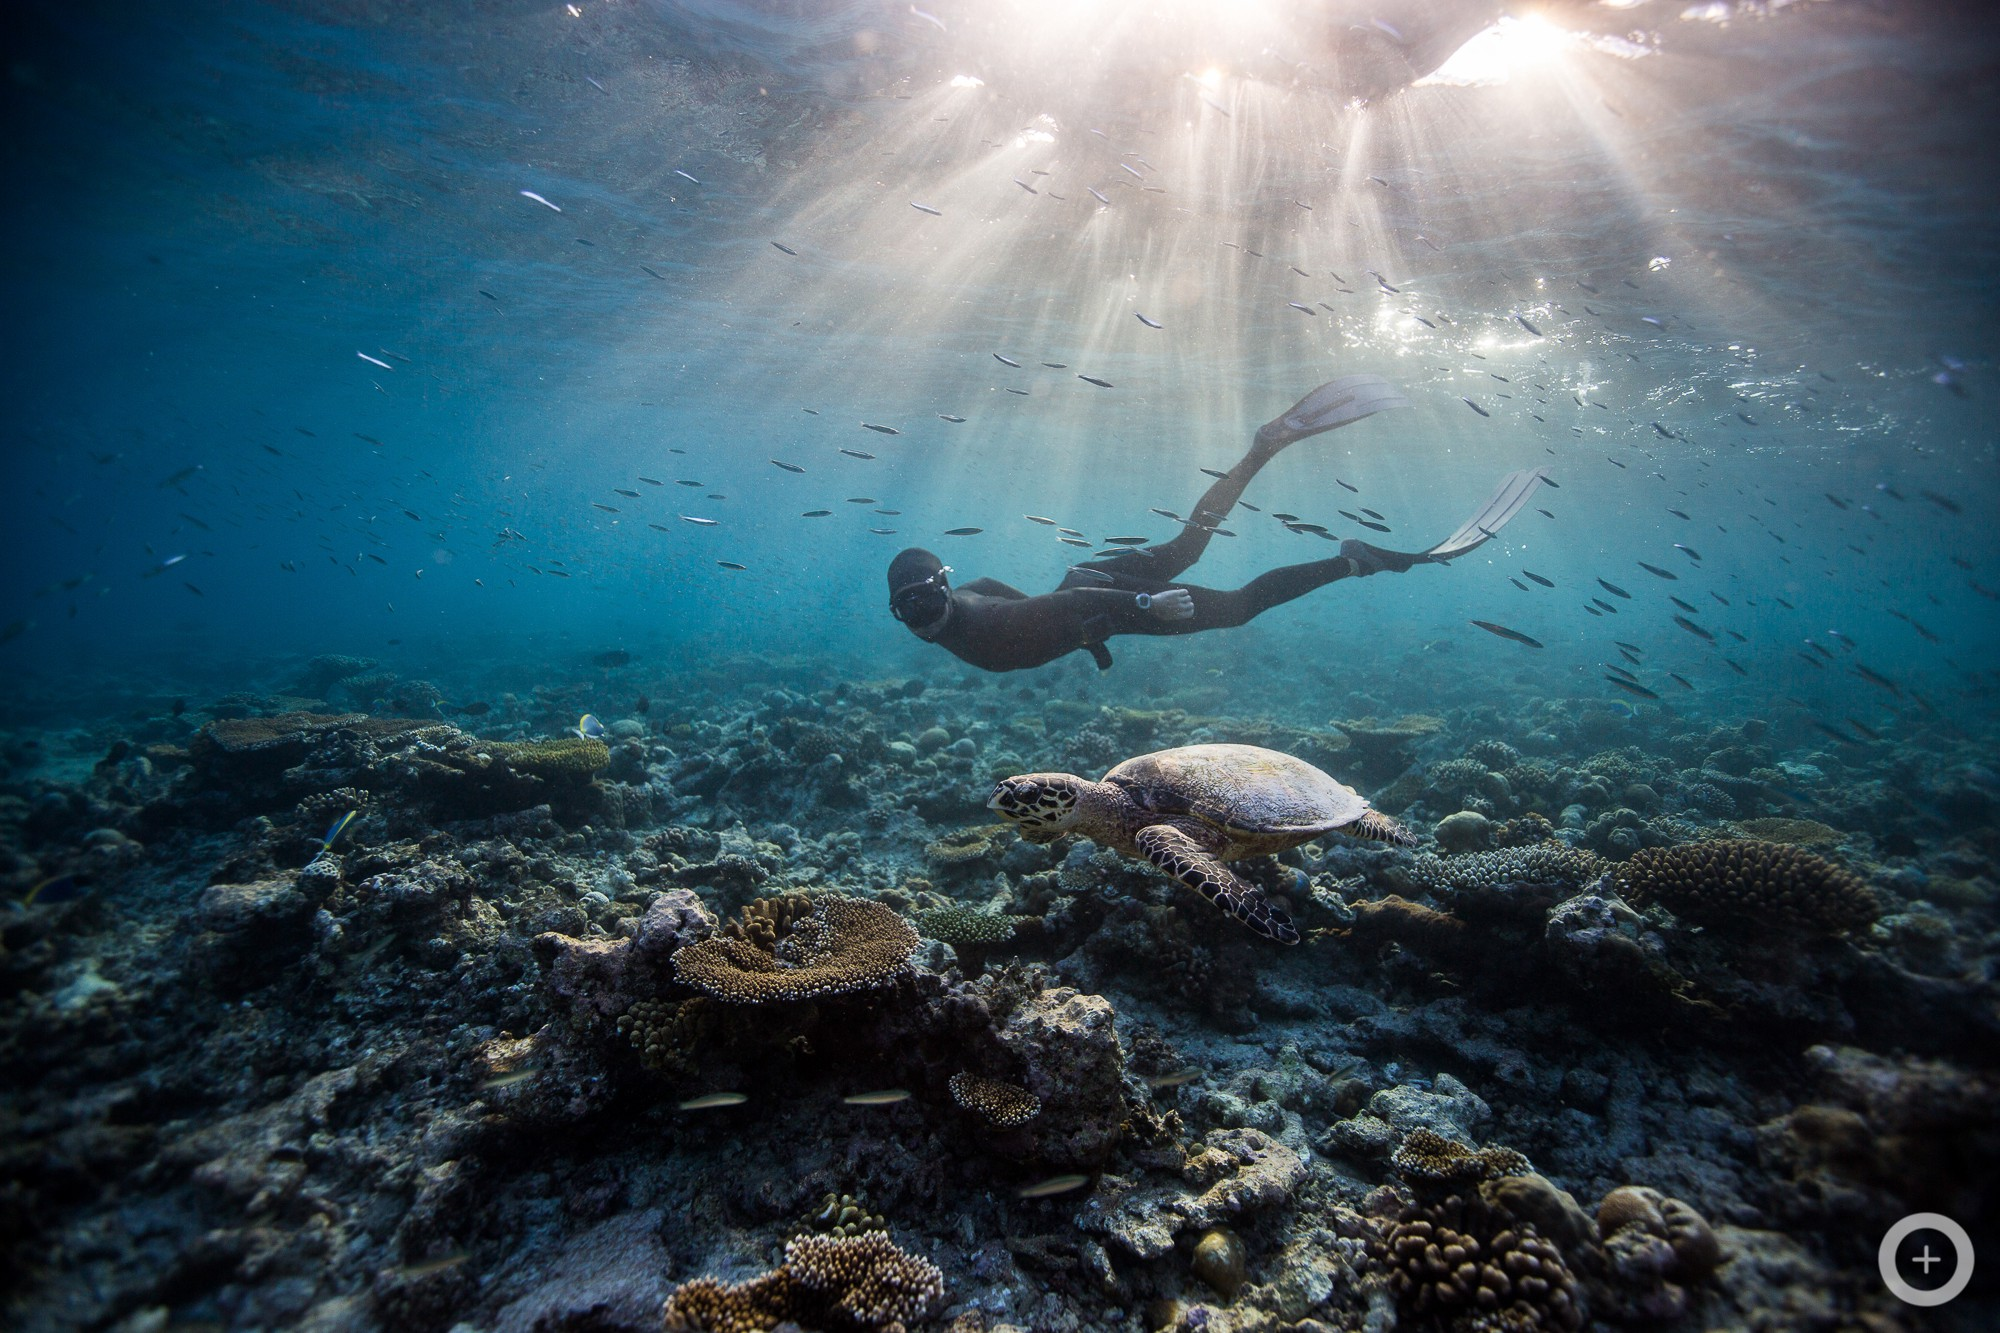 Meet the Freediving Couple Who Make Stunning Underwater ...